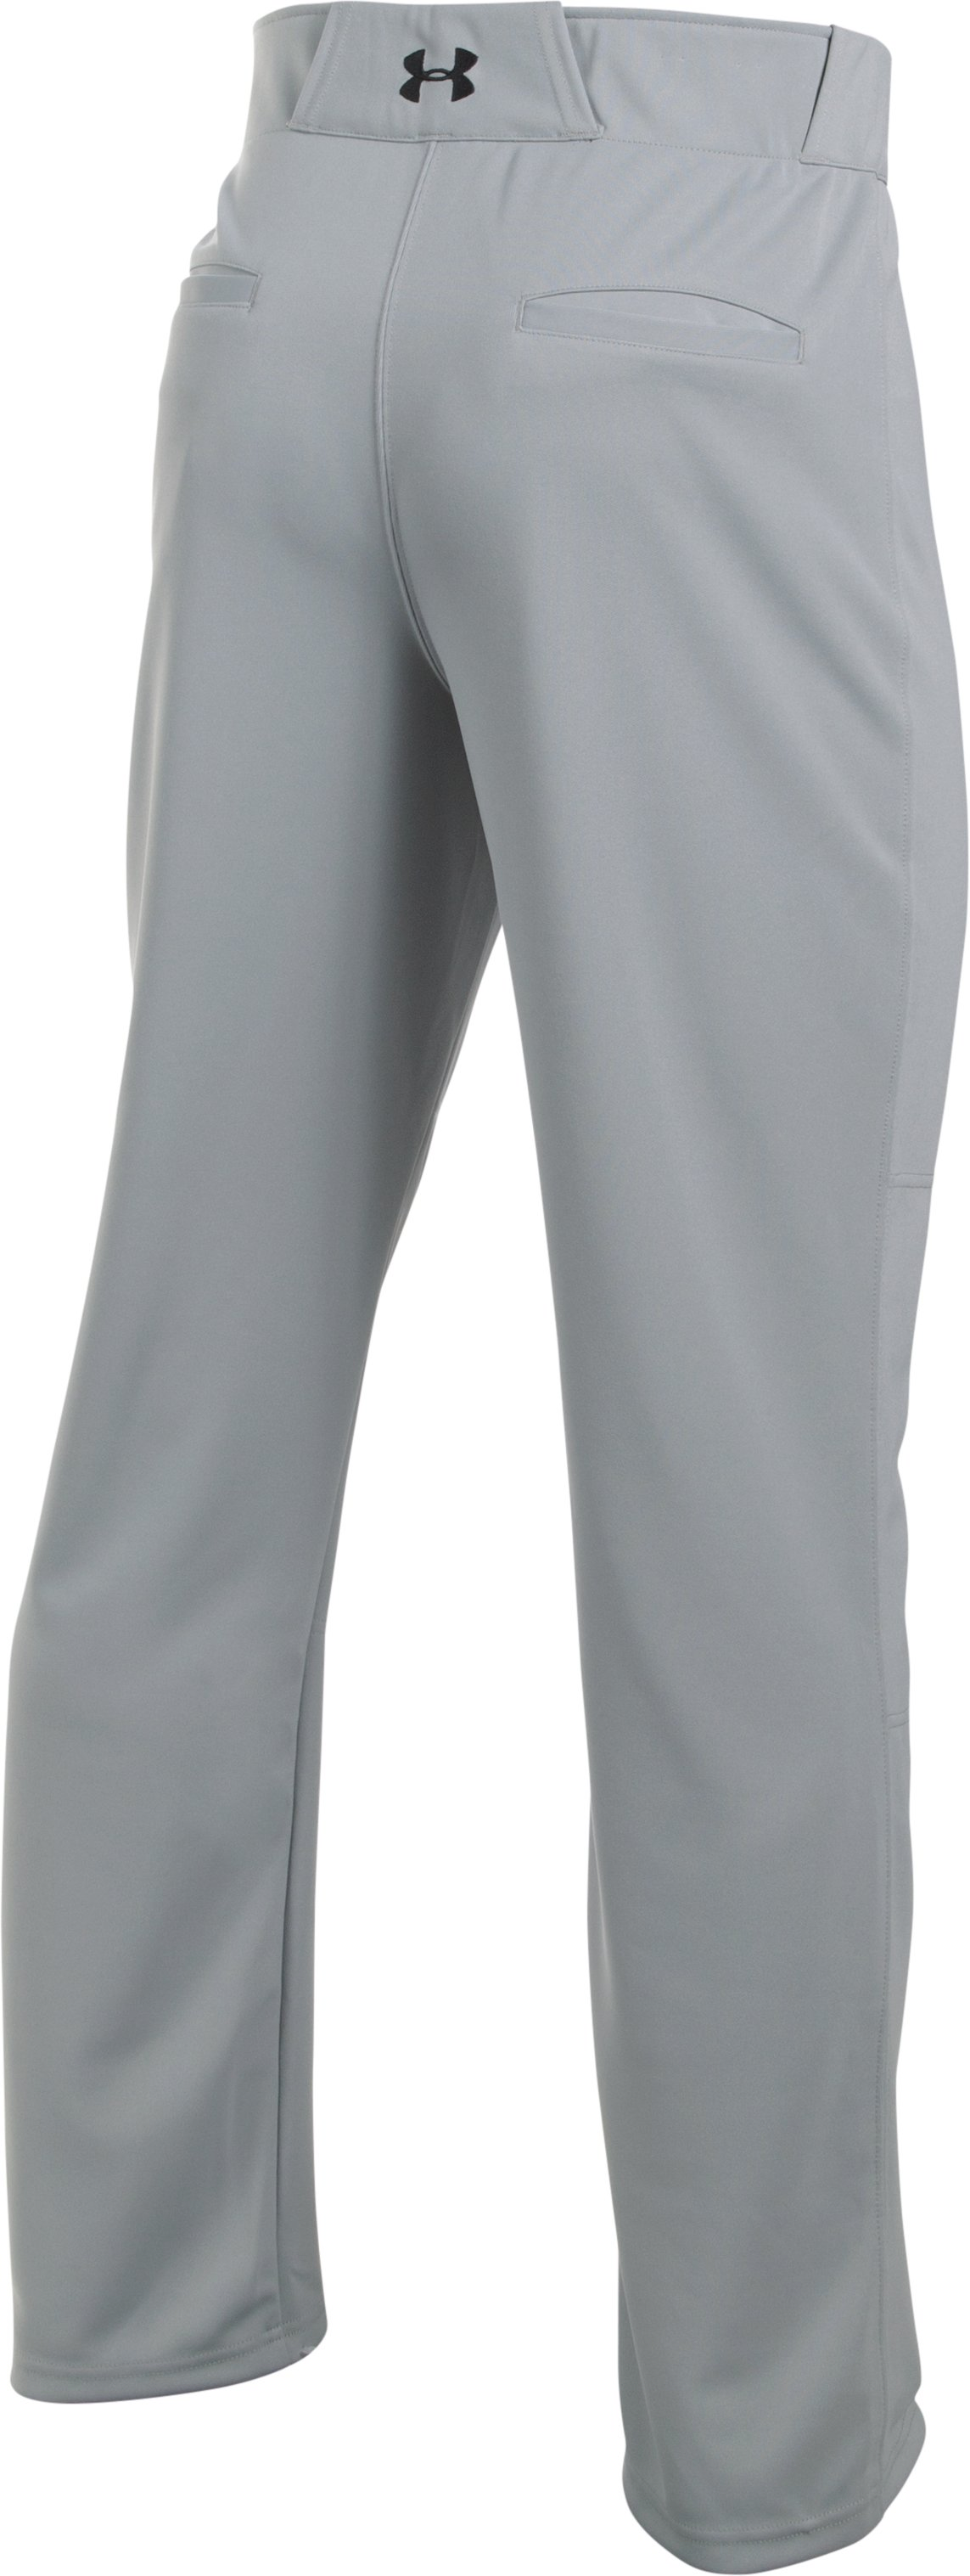 Men's UA Clean Up Baseball Pants, Baseball Gray